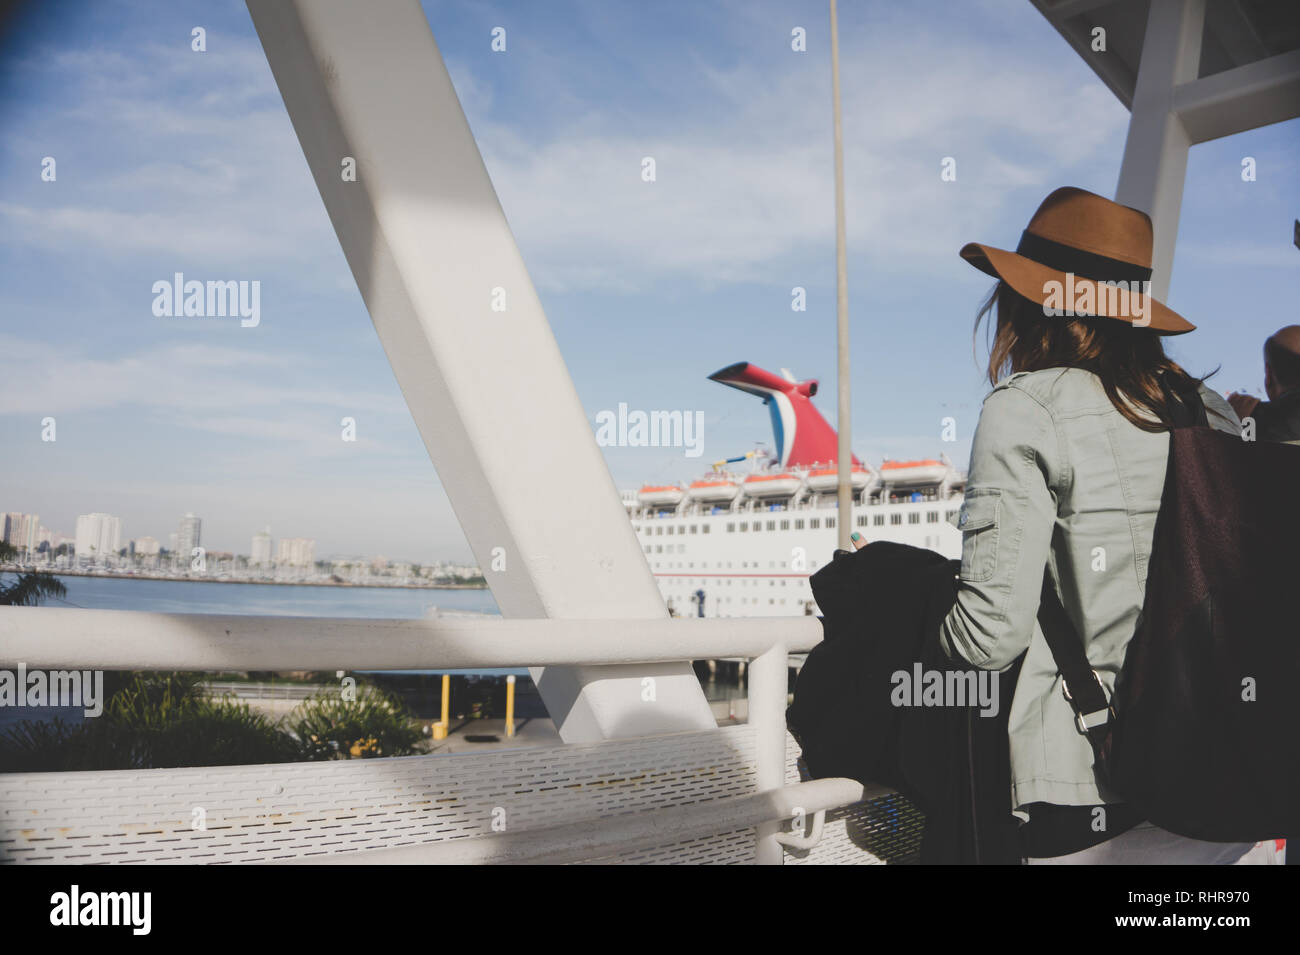 A young woman in a brown hat boards the Carnival Inspiration cruise ship in Long Beach, California, USA via the gangway onto the boat on a sunny day - Stock Image